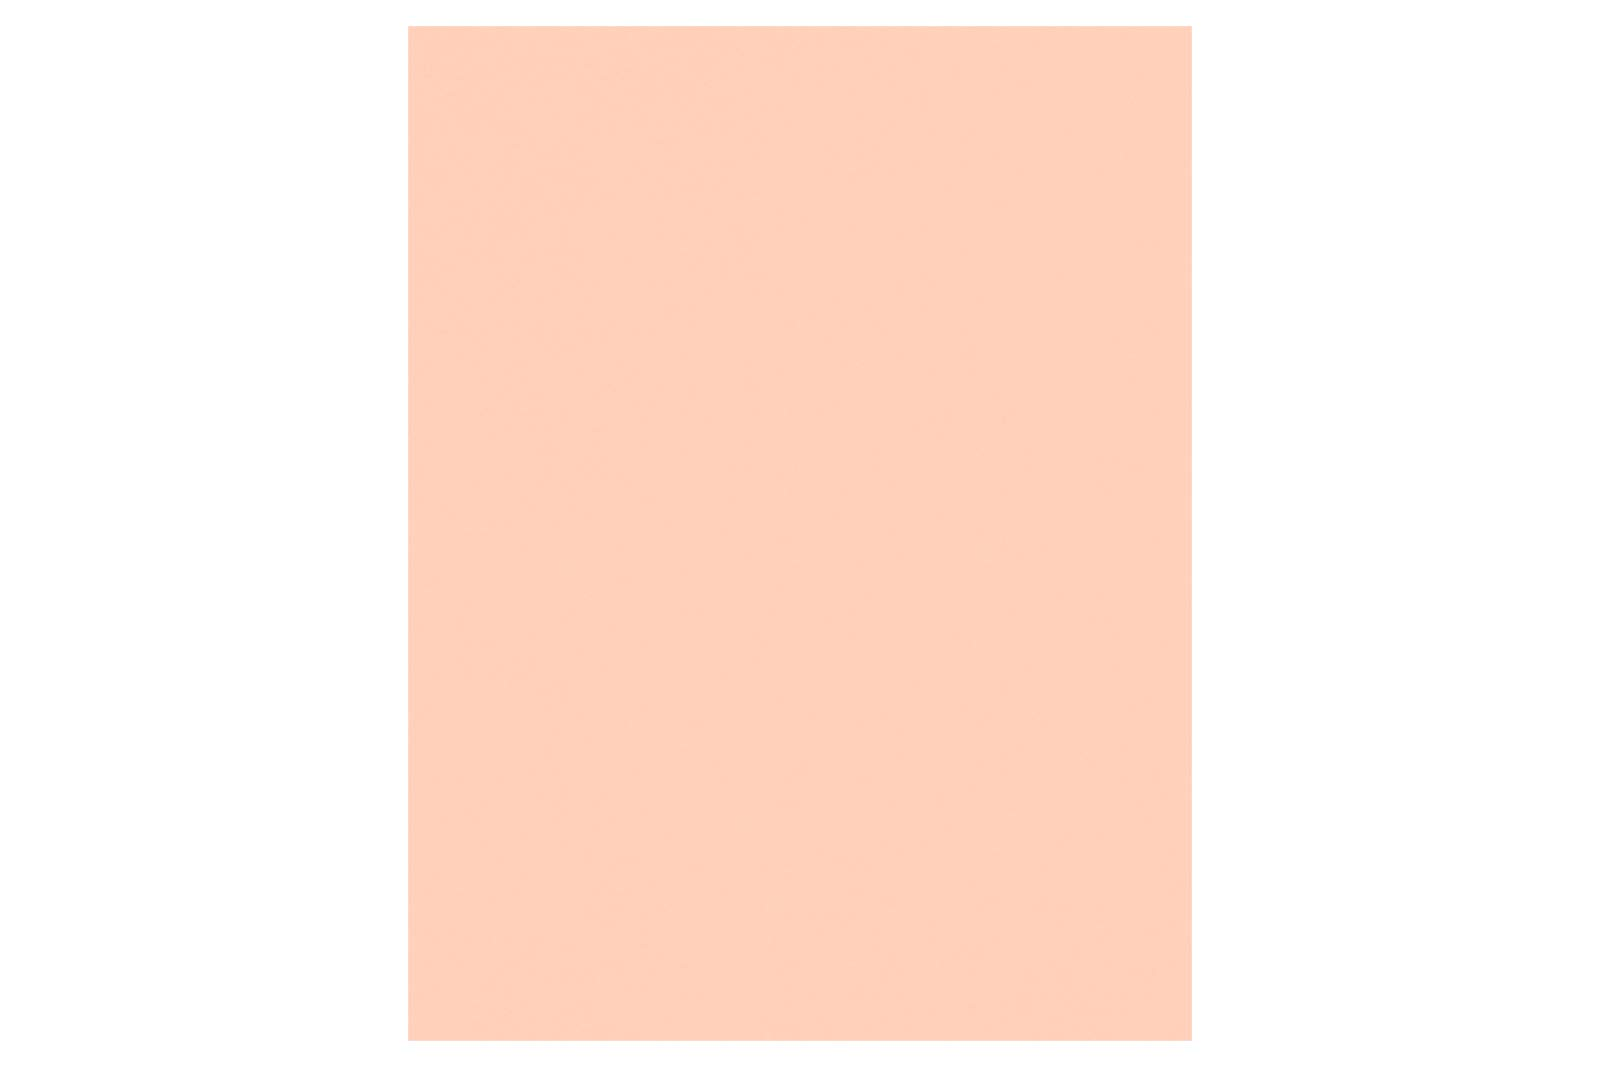 8 1/2 x 11 Cardstock - Blush (50 Qty.) | Perfect for Holiday Crafting, Invitations, Scrapbooking, Cards and so much more! | 81211-C-114-50